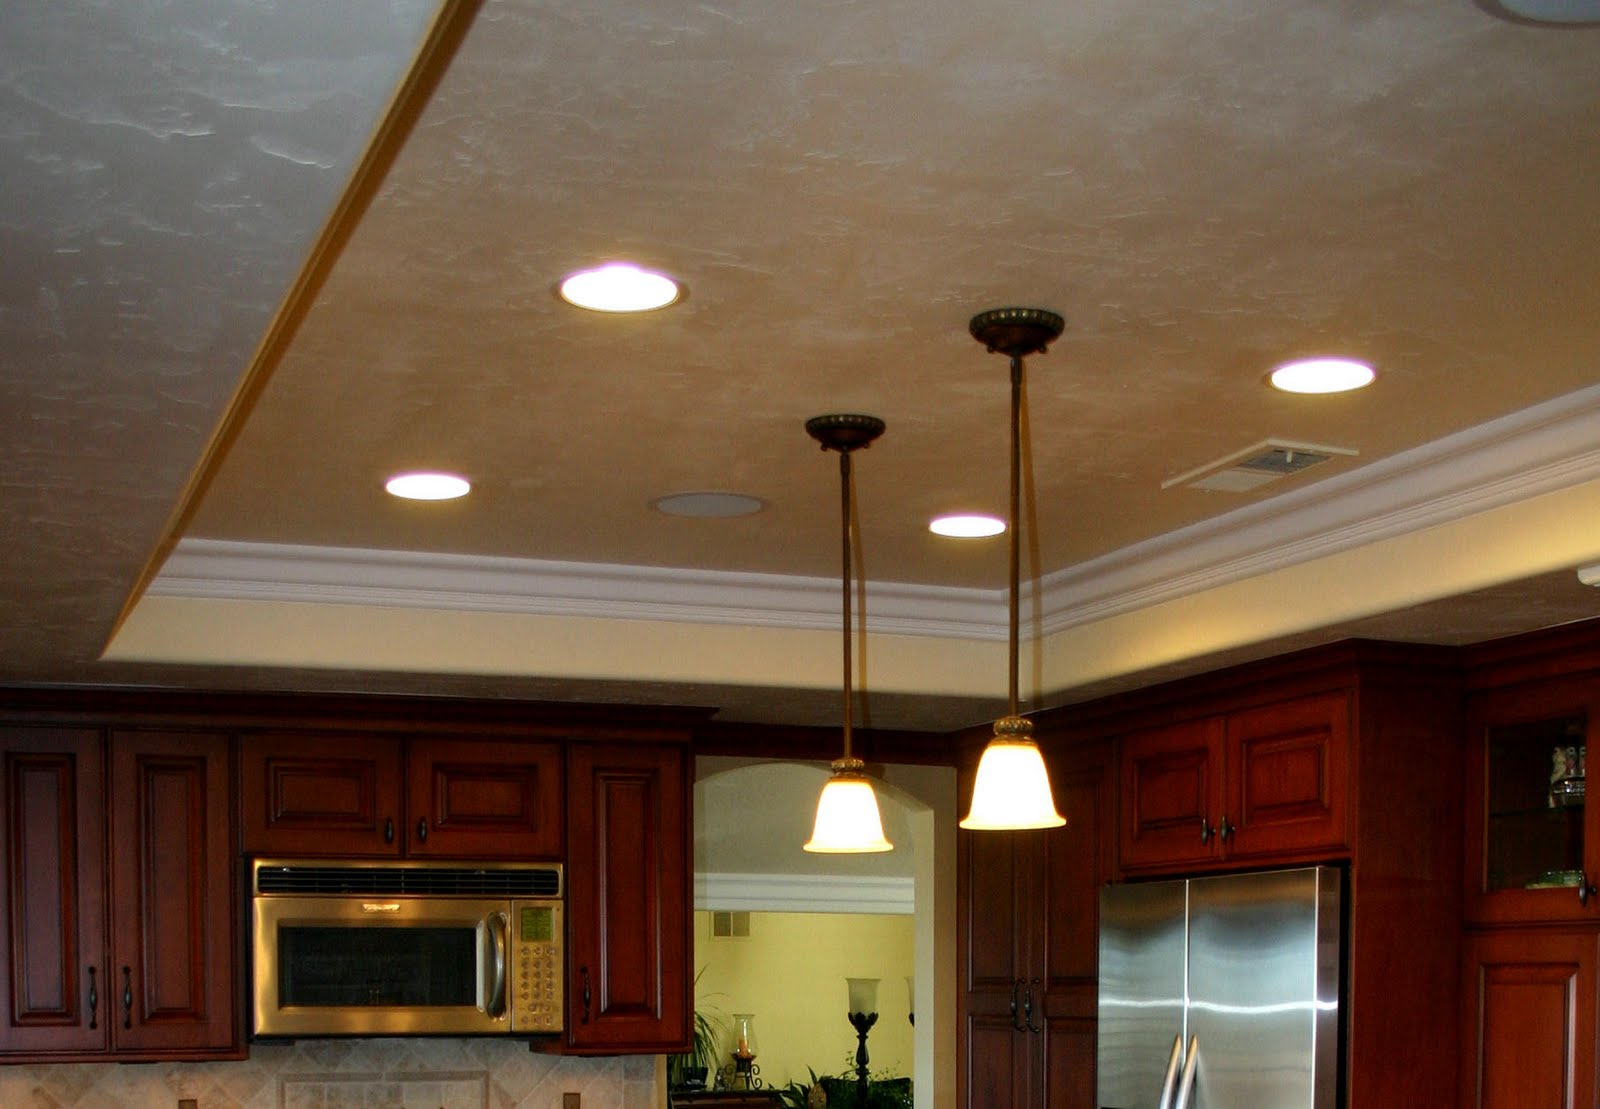 Top 10 types of drop ceiling lights warisan lighting drop ceiling lights photo 8 aloadofball